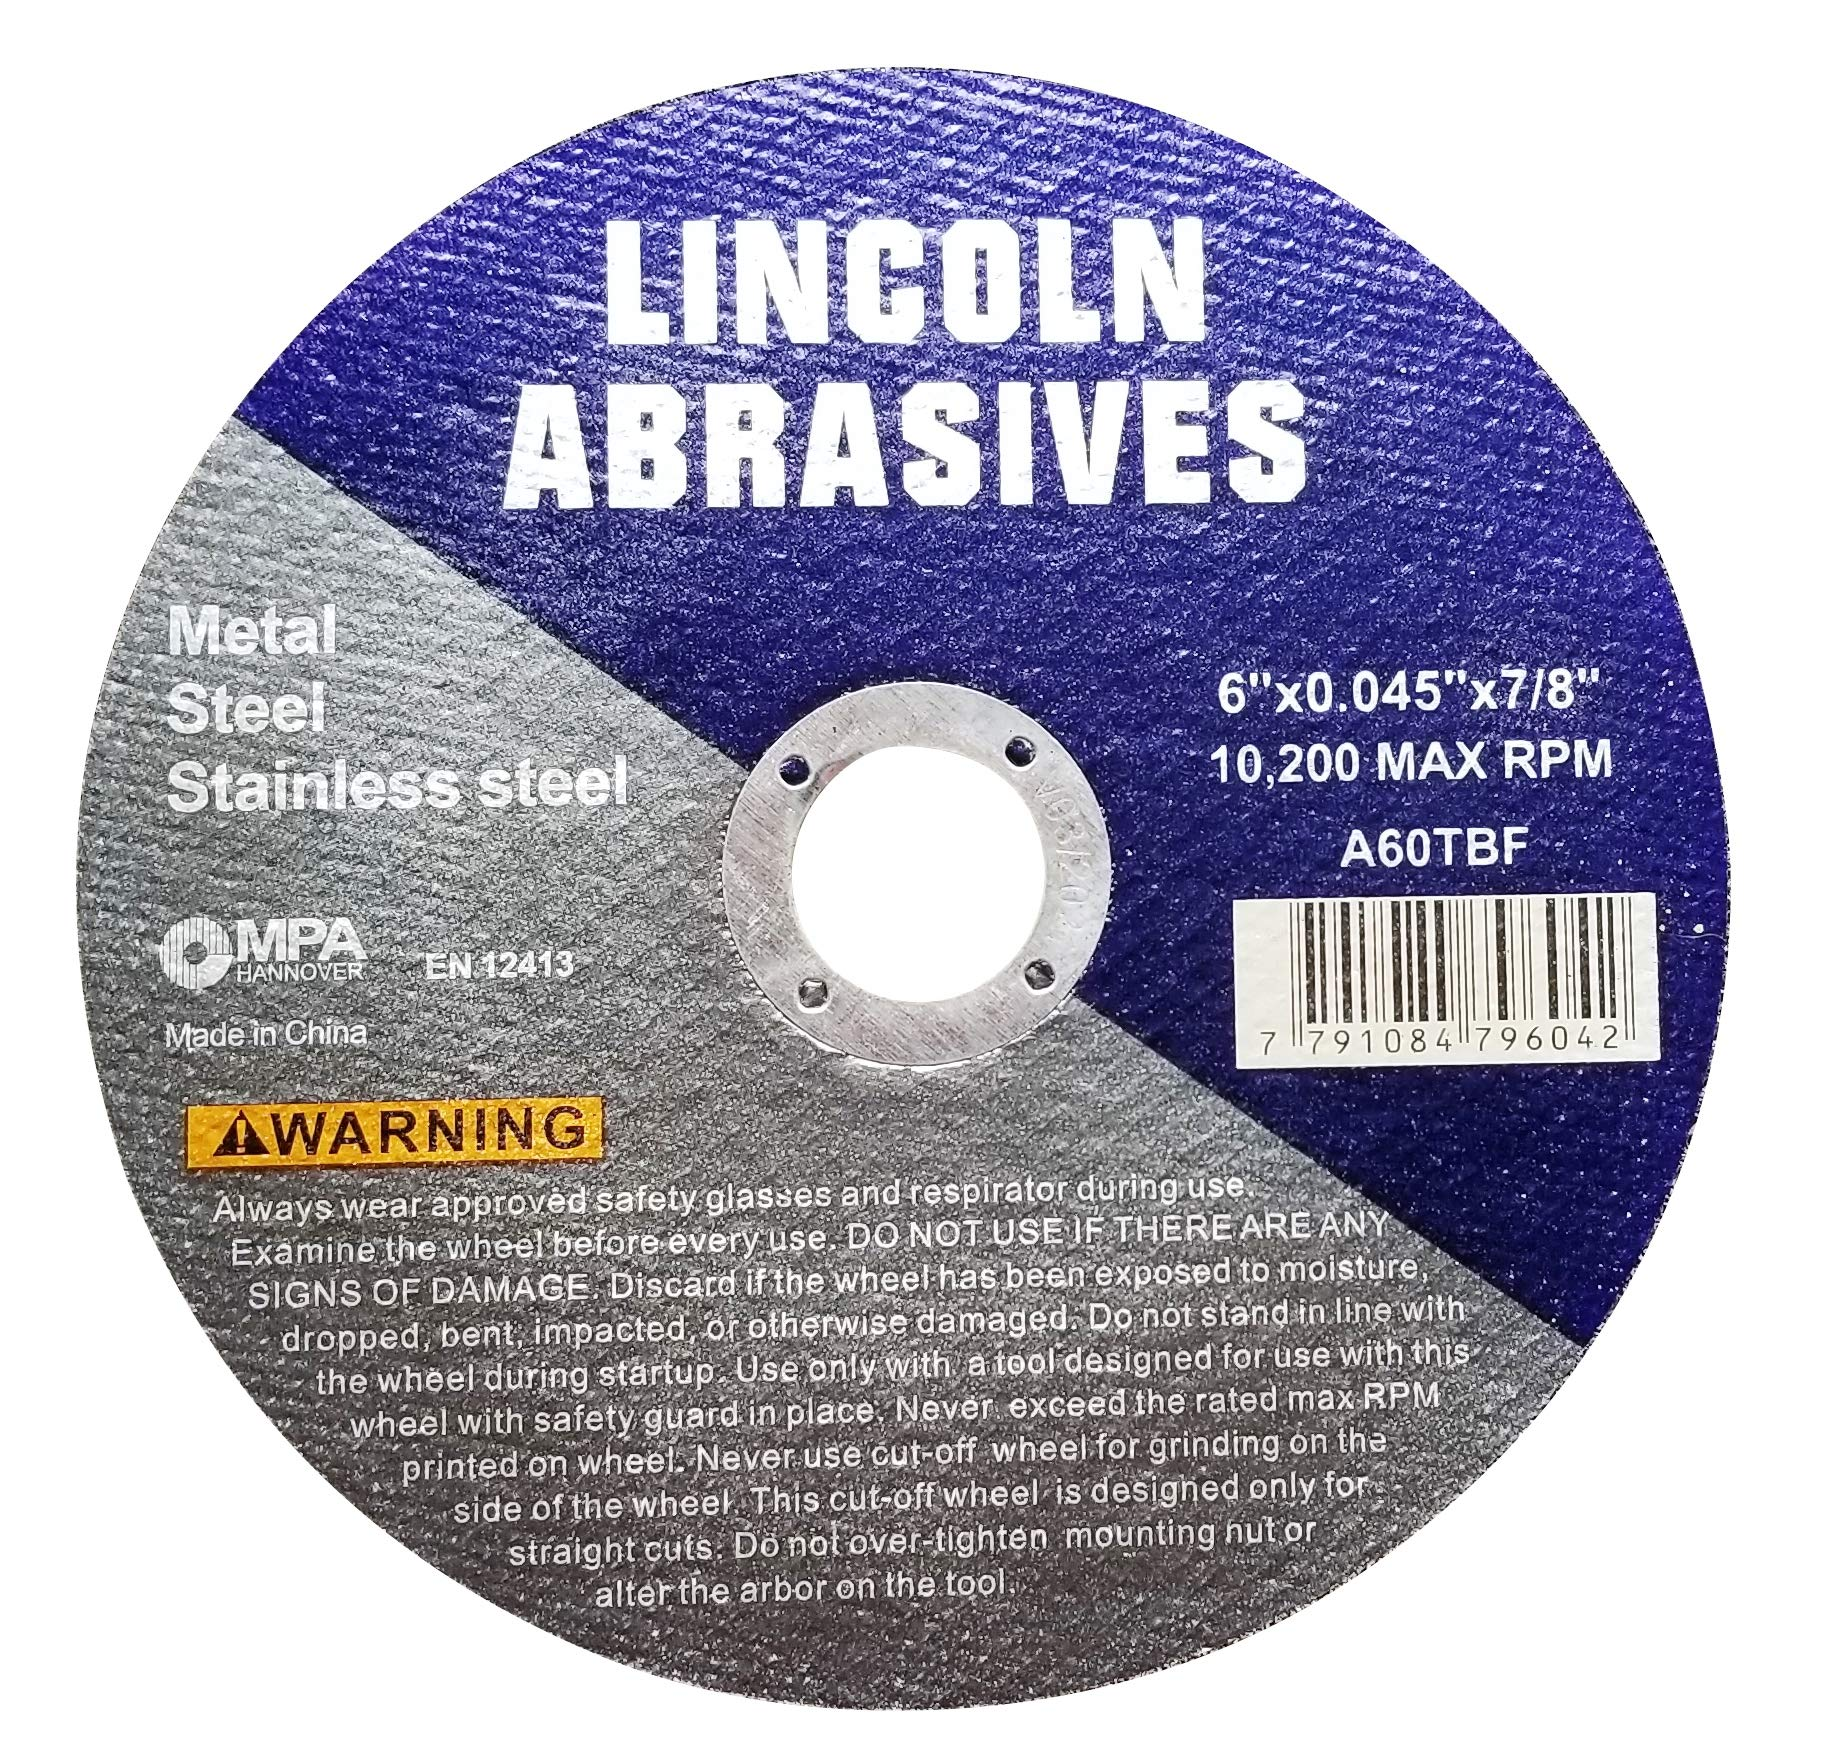 100 Pc 6''x.045''x7/8'' Cut-Off Wheels Lincoln Abrasives Metal & Stainless Steel